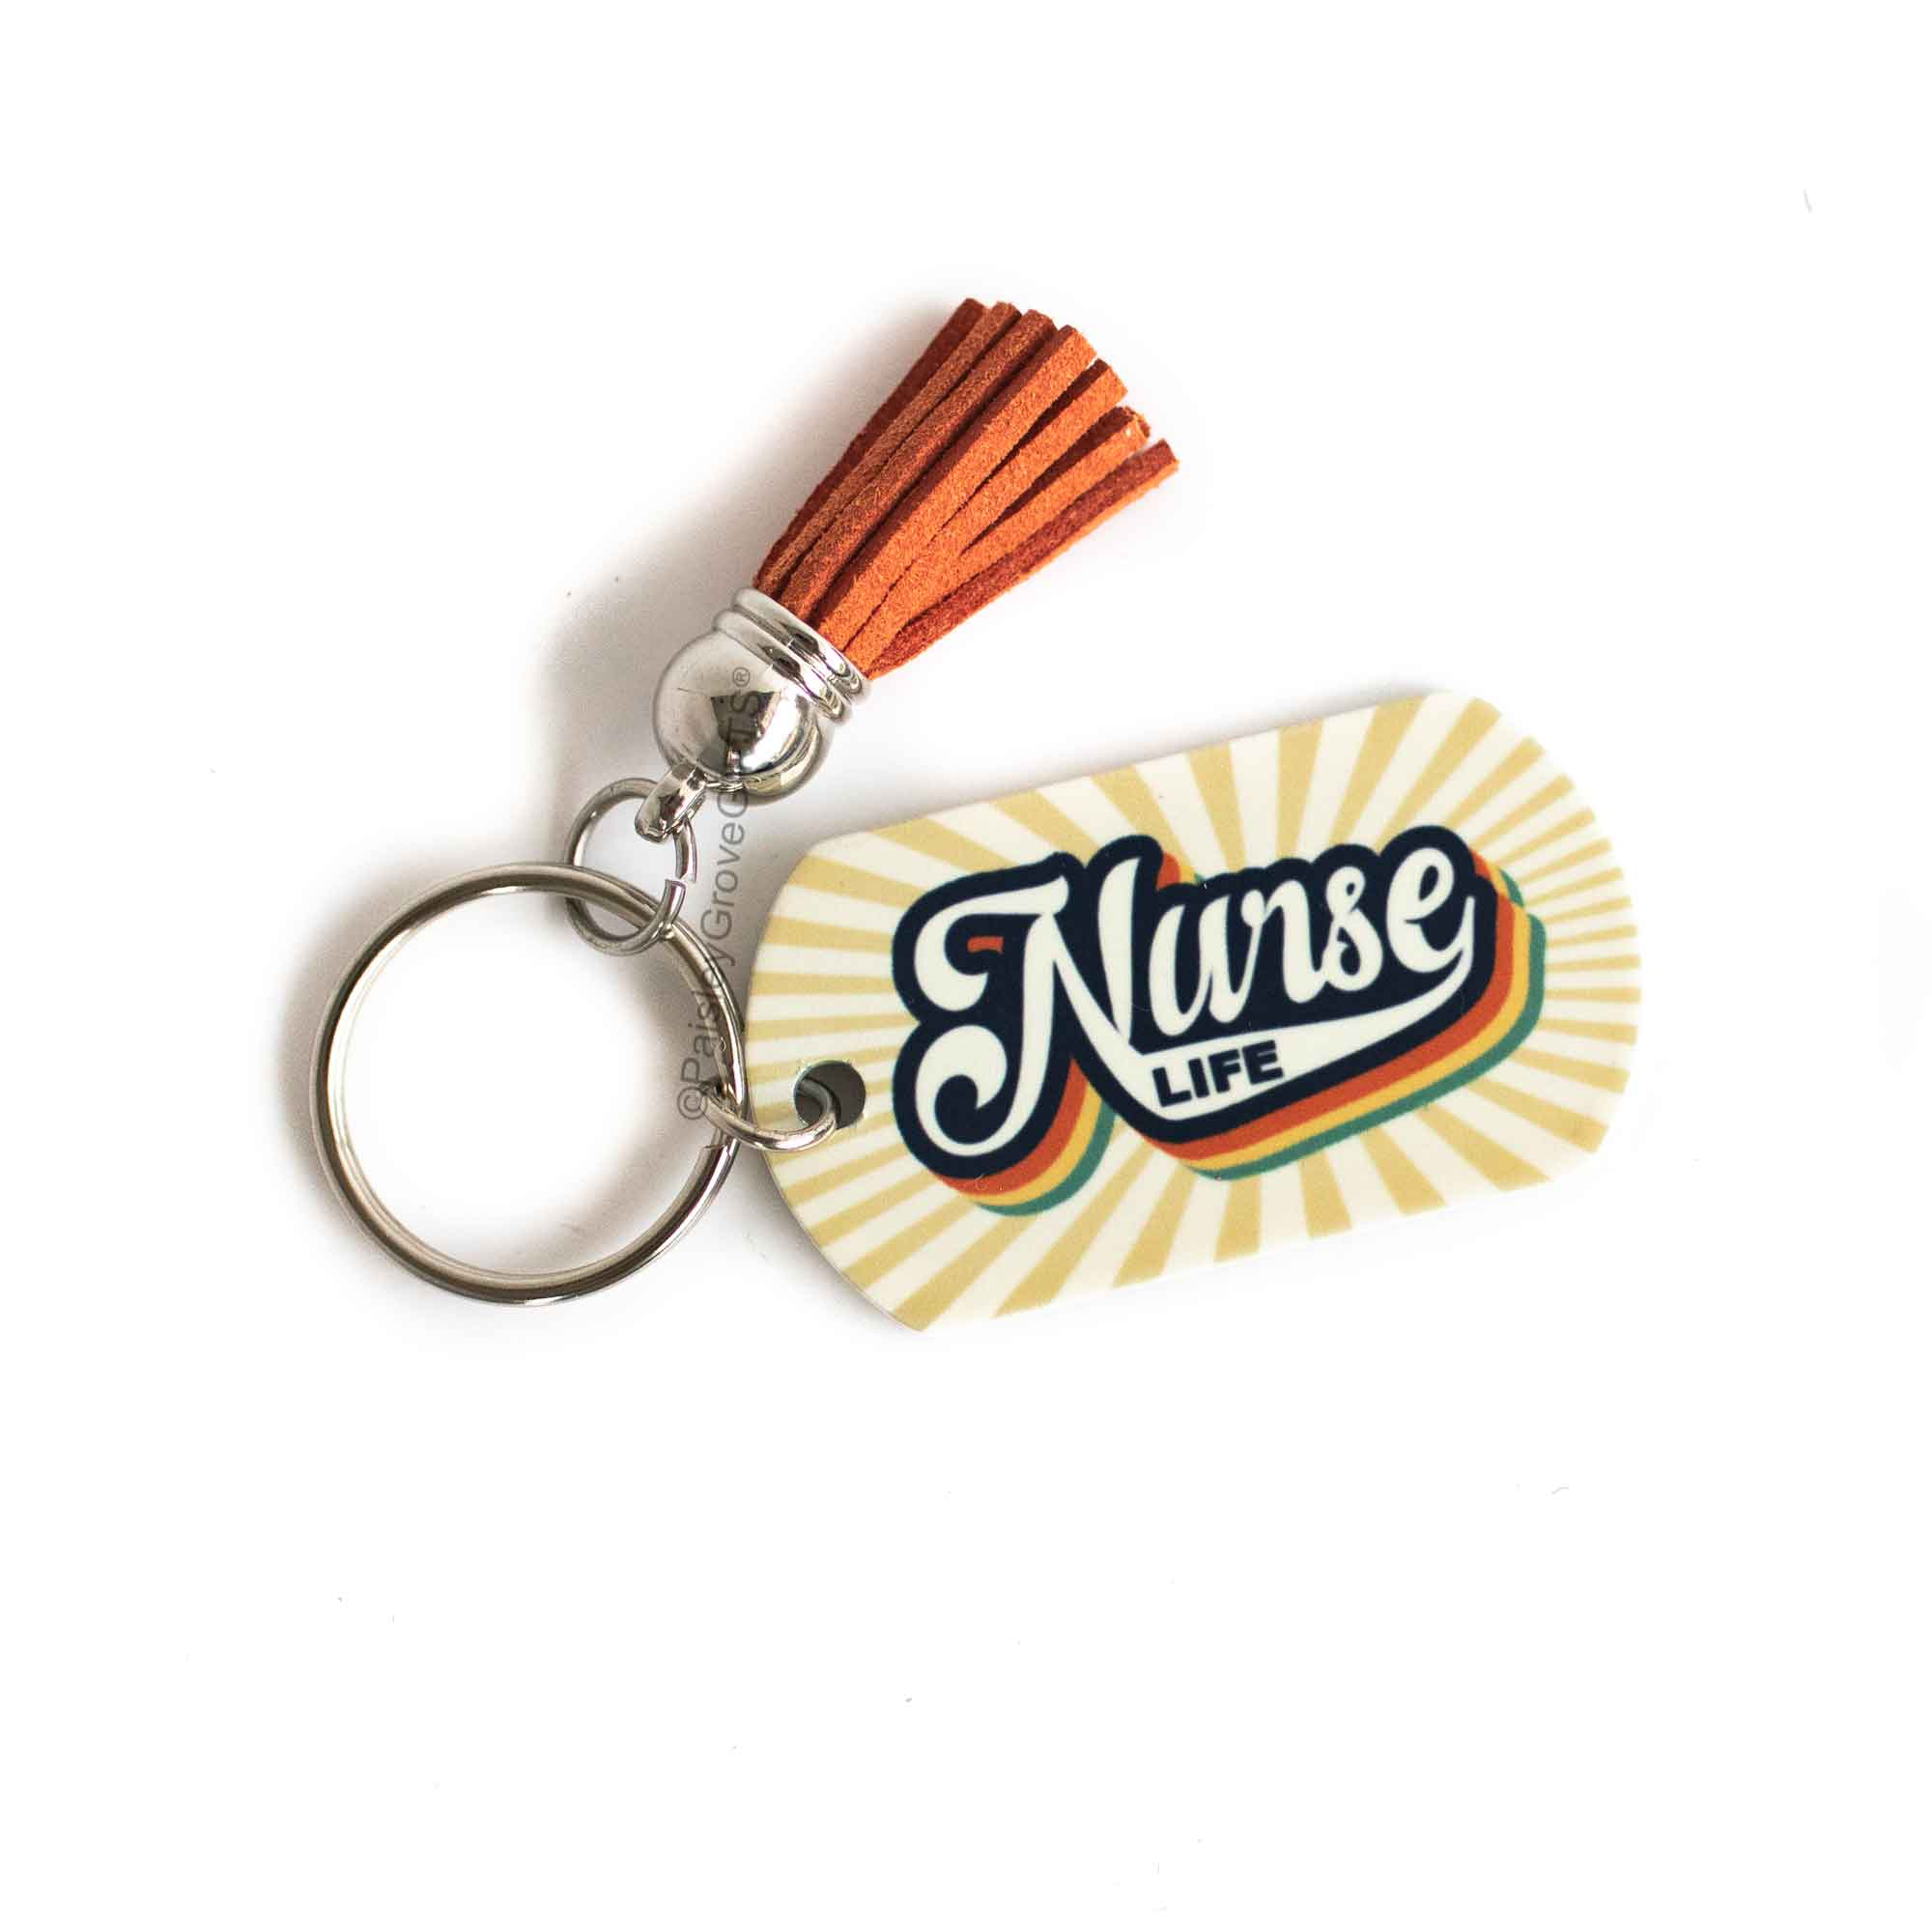 CopyrightPaisleyGroveGIFTS S009n1 Retro Vintage Nurse Keychain Gift for Nurses with Burnt Orange Tassel